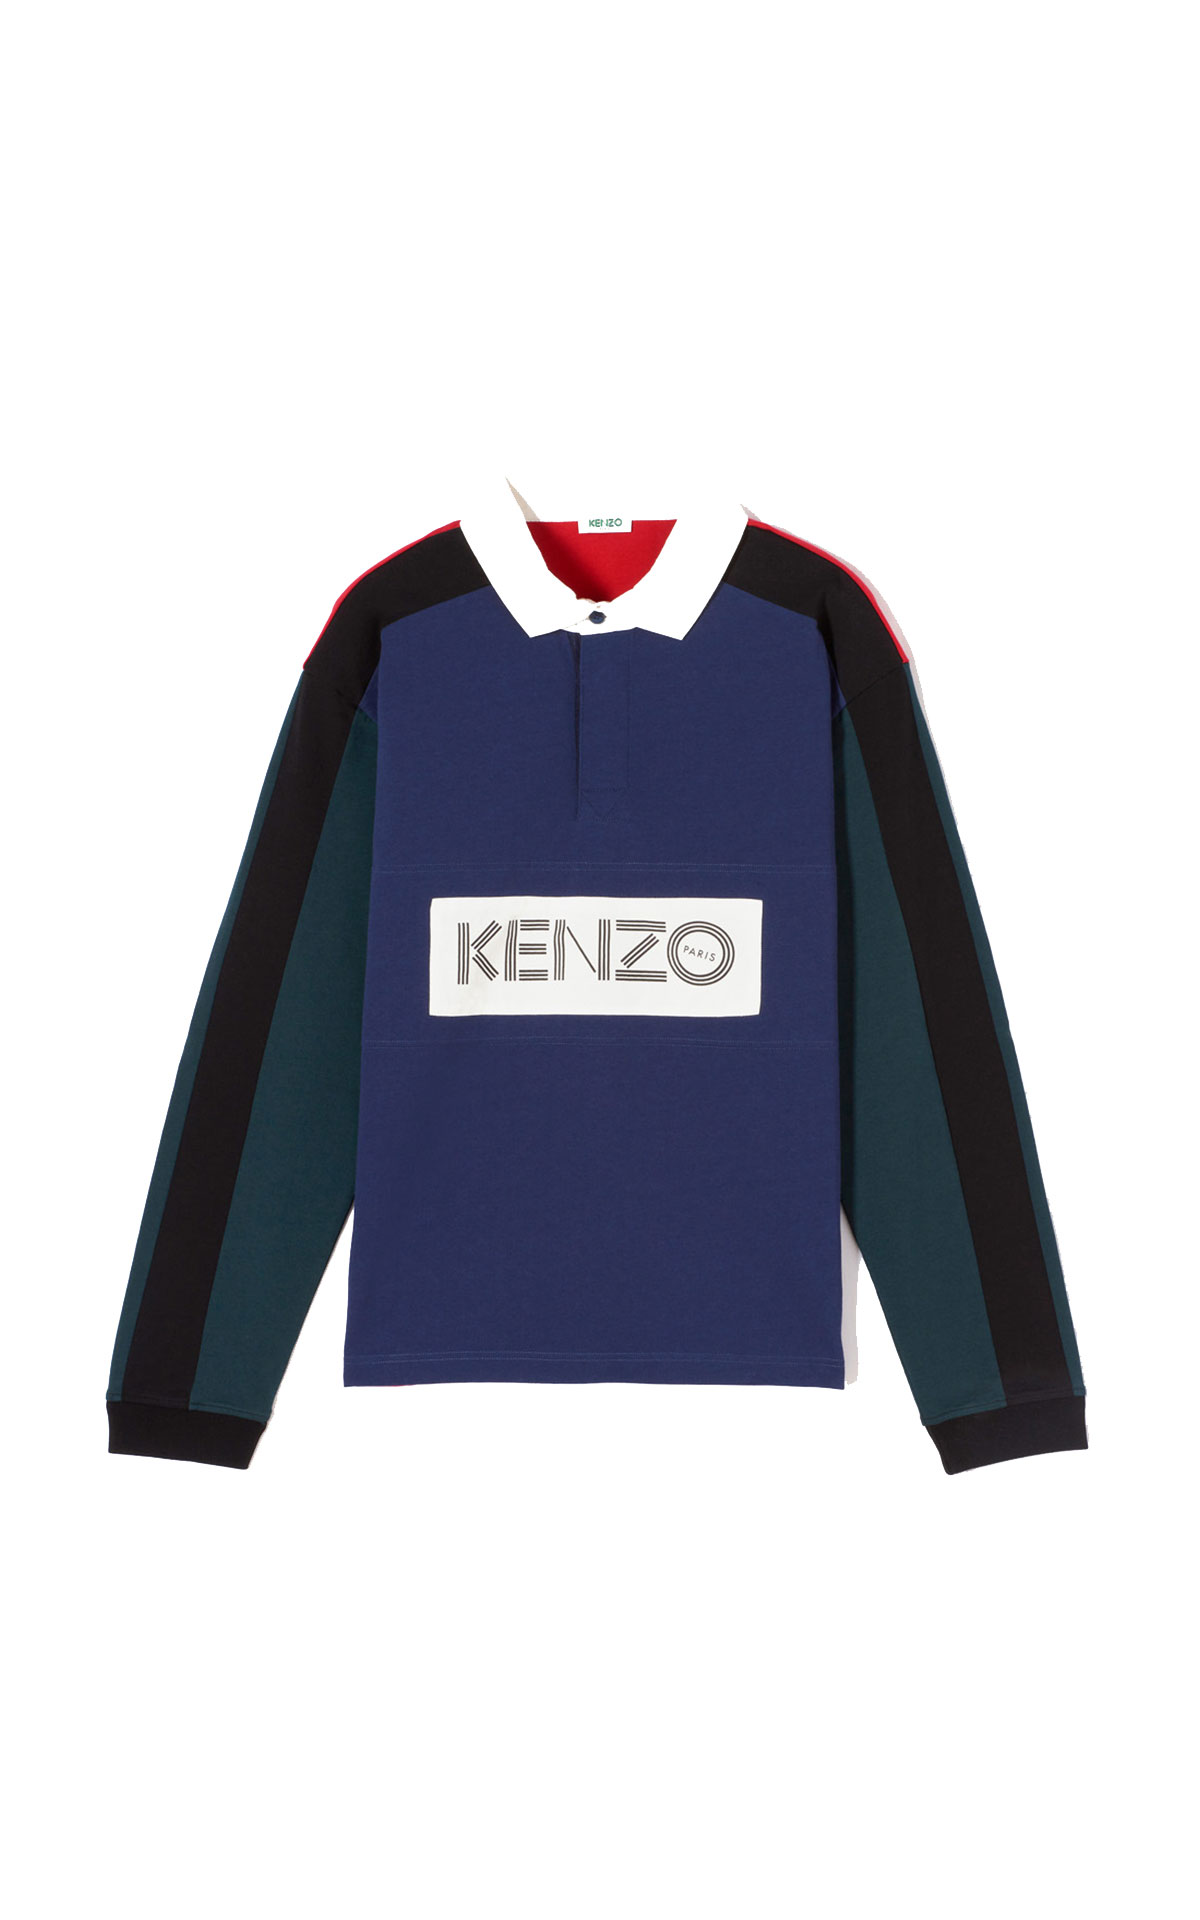 Kenzo Kenzo long sleeve polo shirt from Bicester Village